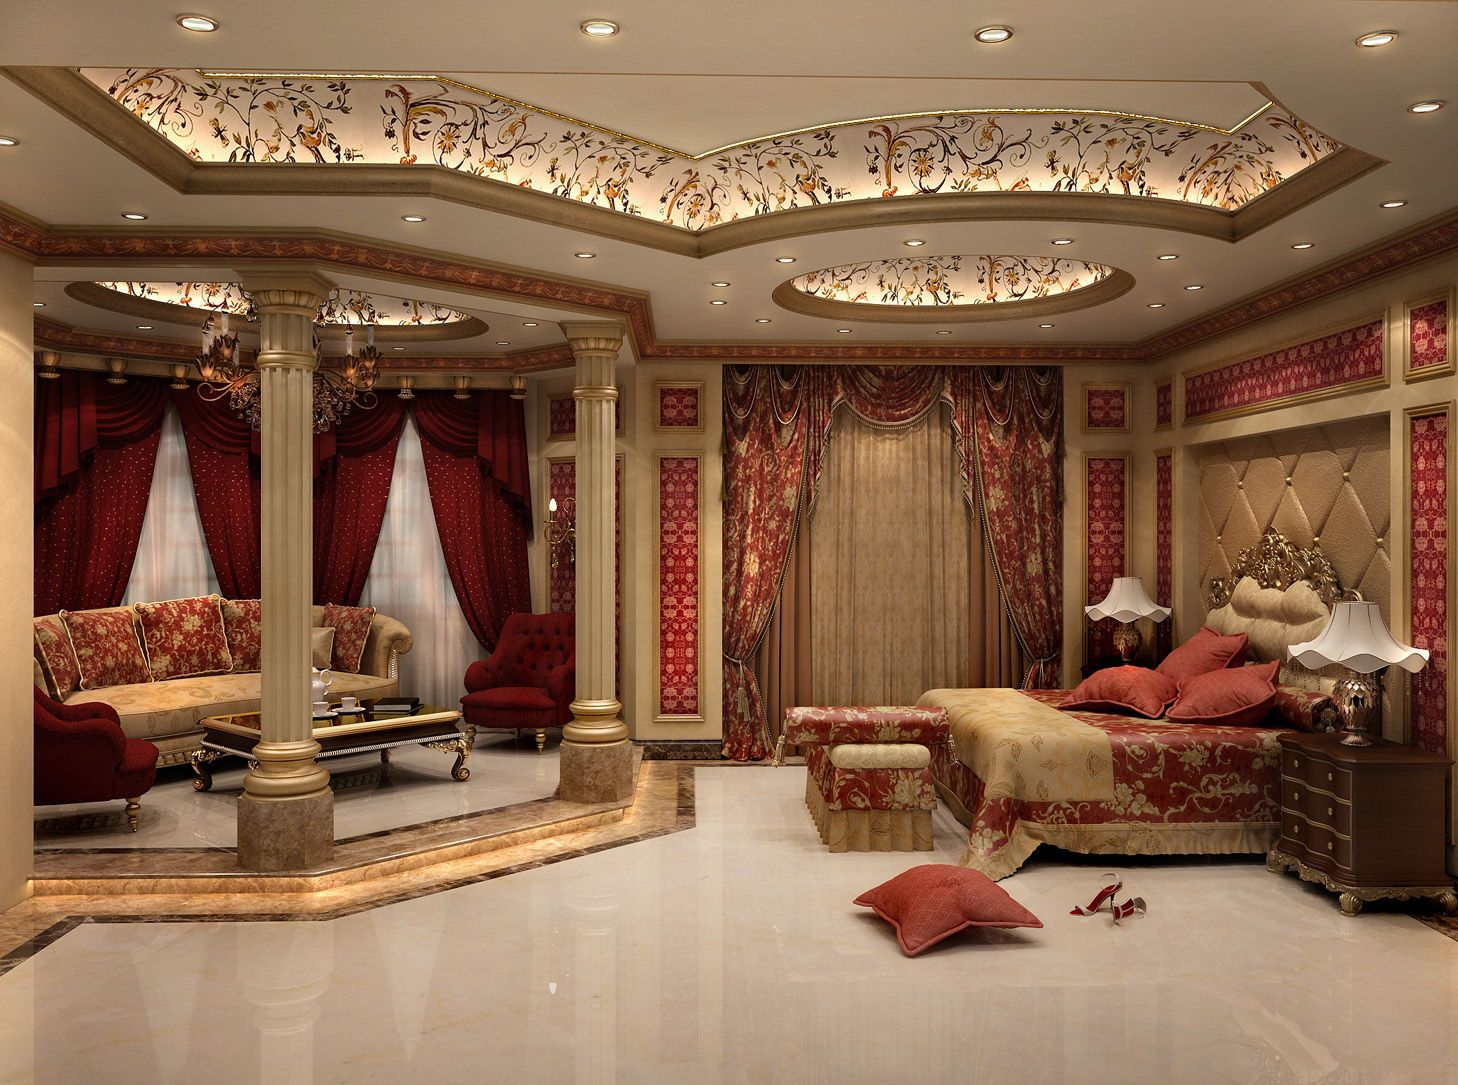 50 of the most amazing master bedrooms weve ever seen